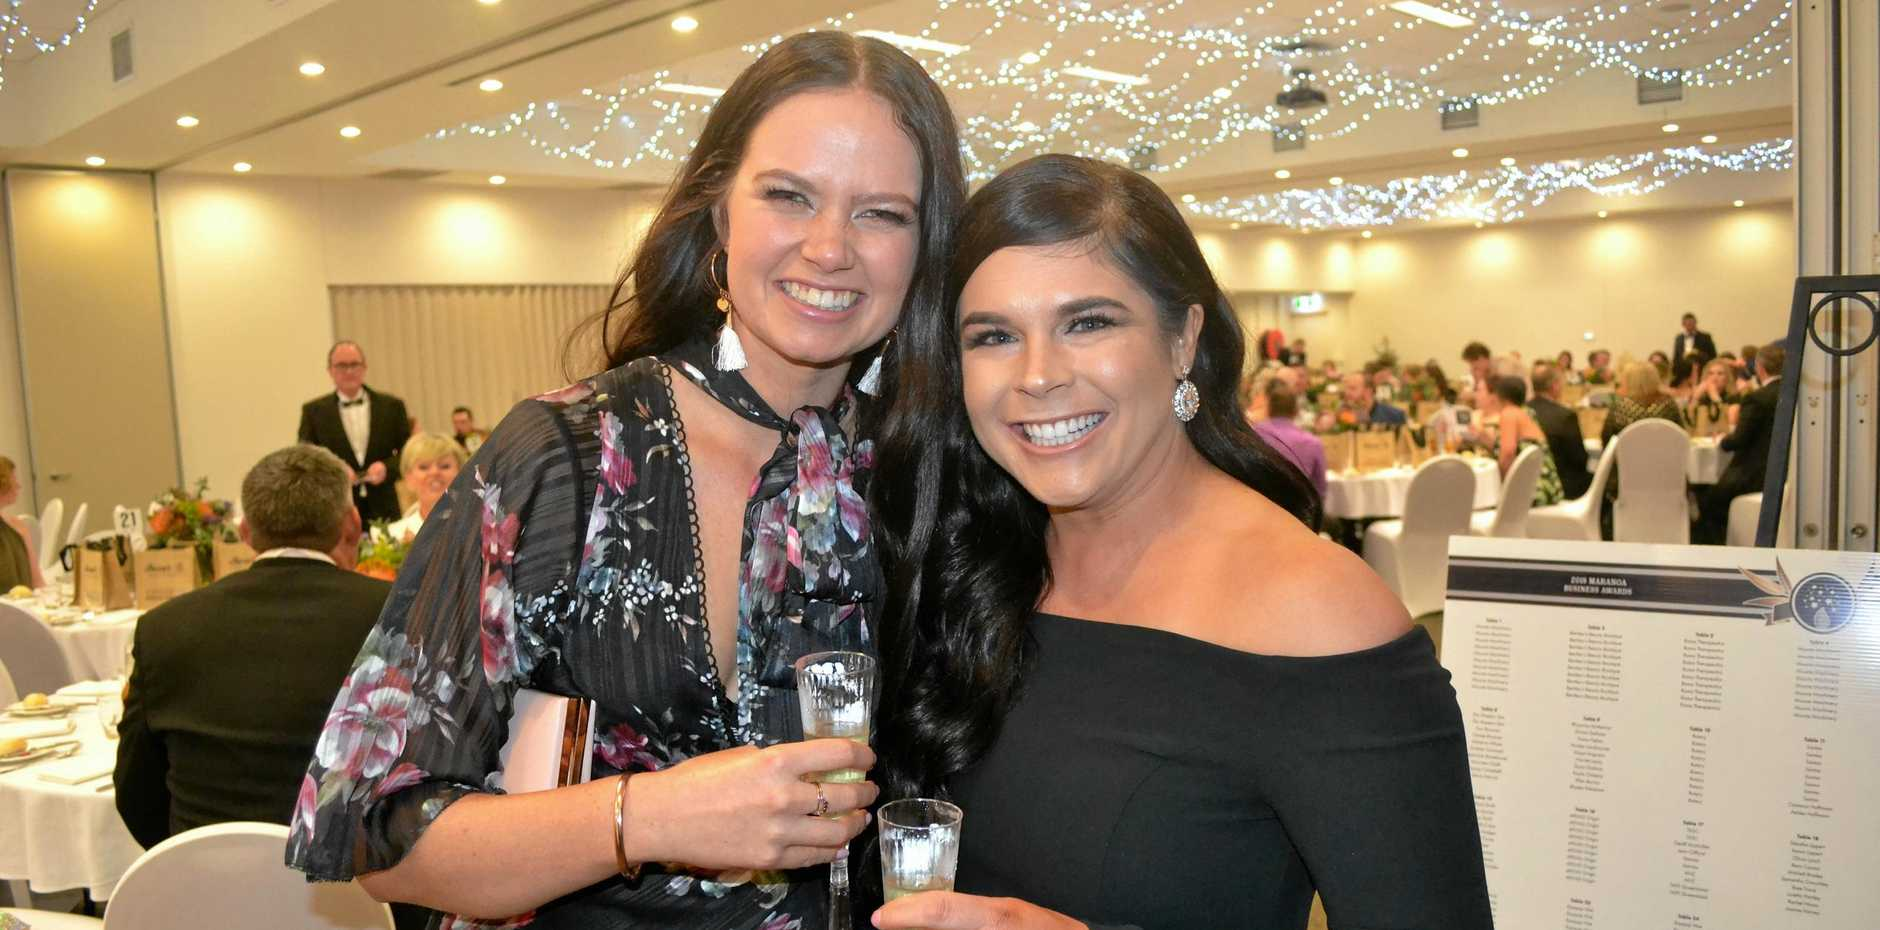 AWARDS NIGHT: Sophie Kluckhohn and Moz Miller at the annual Maranoa Business Awards evening.